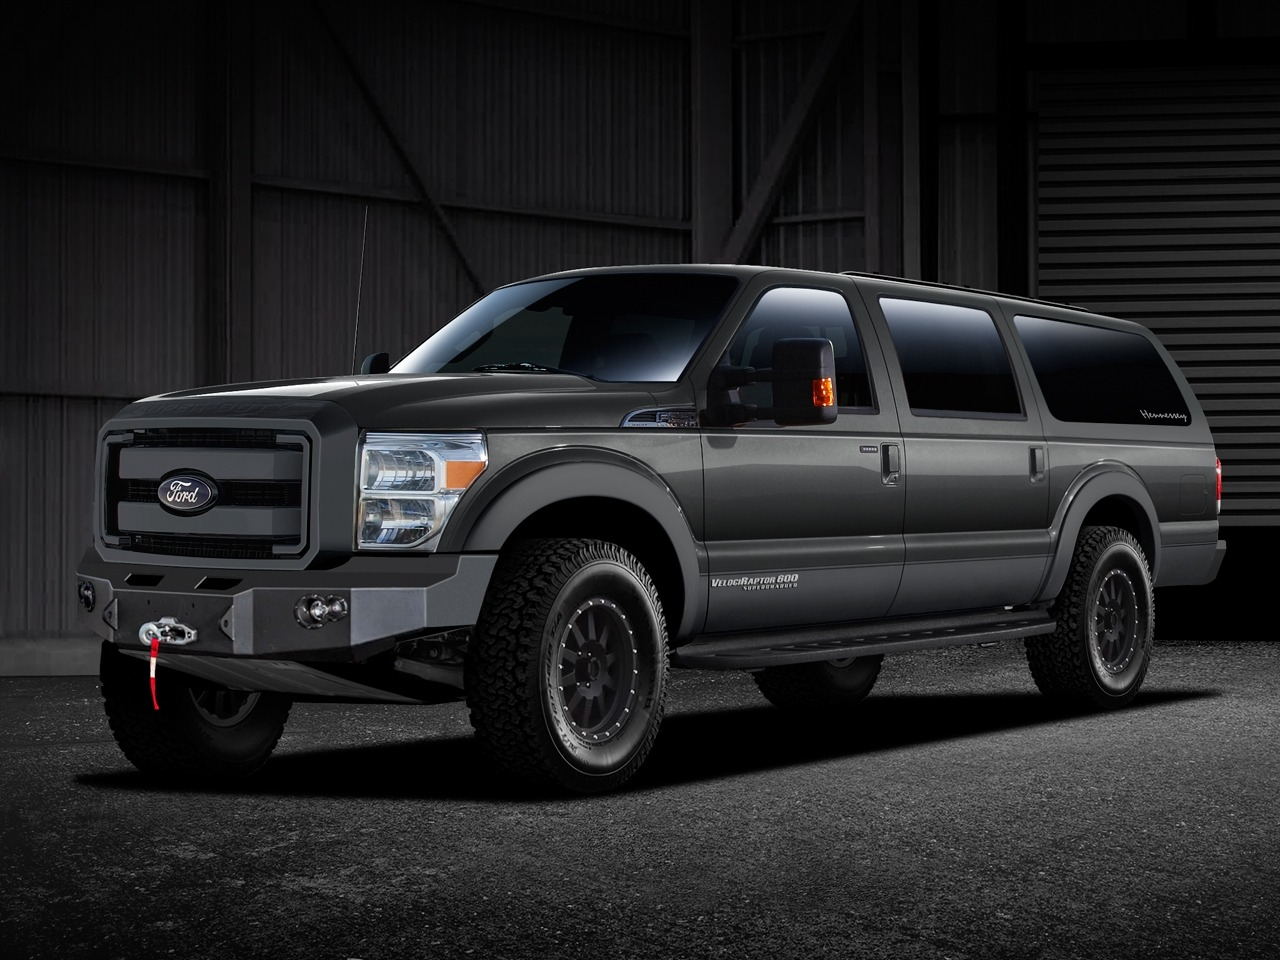 2022 Ford Excursion Wallpaper